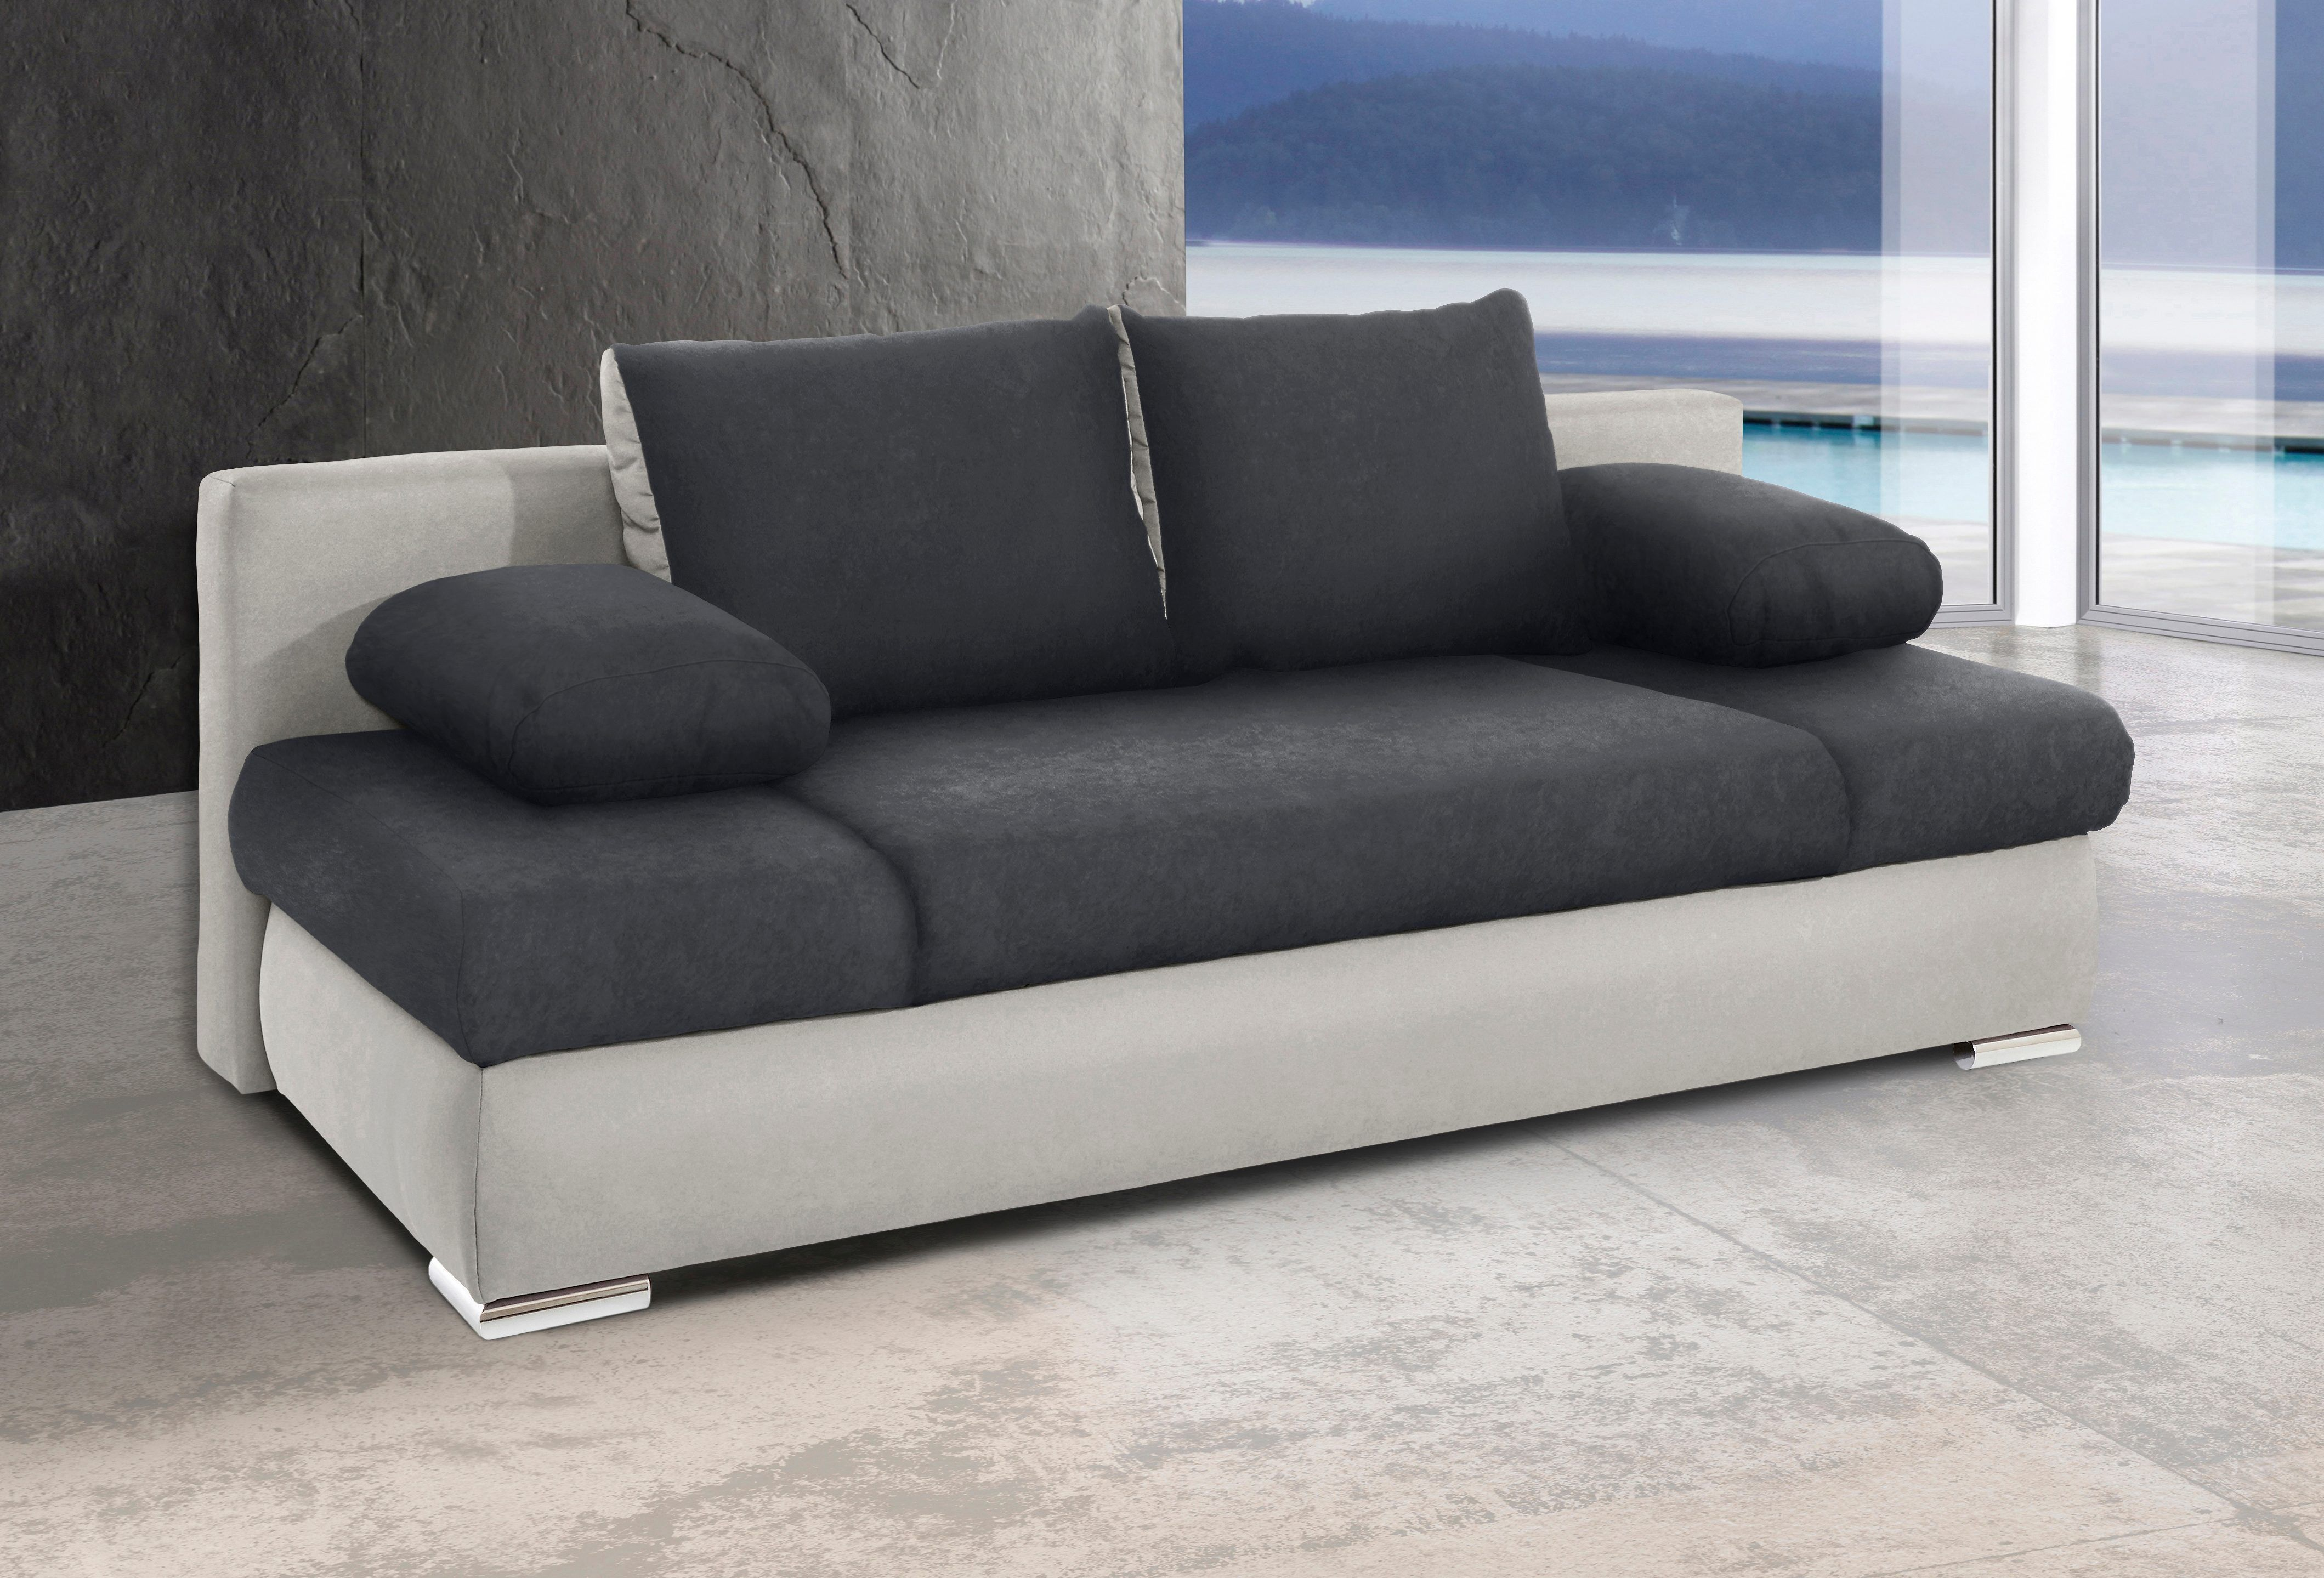 Collection Ab Schlafsofa In 2020 Sofa Schlafsofa Bettsofa